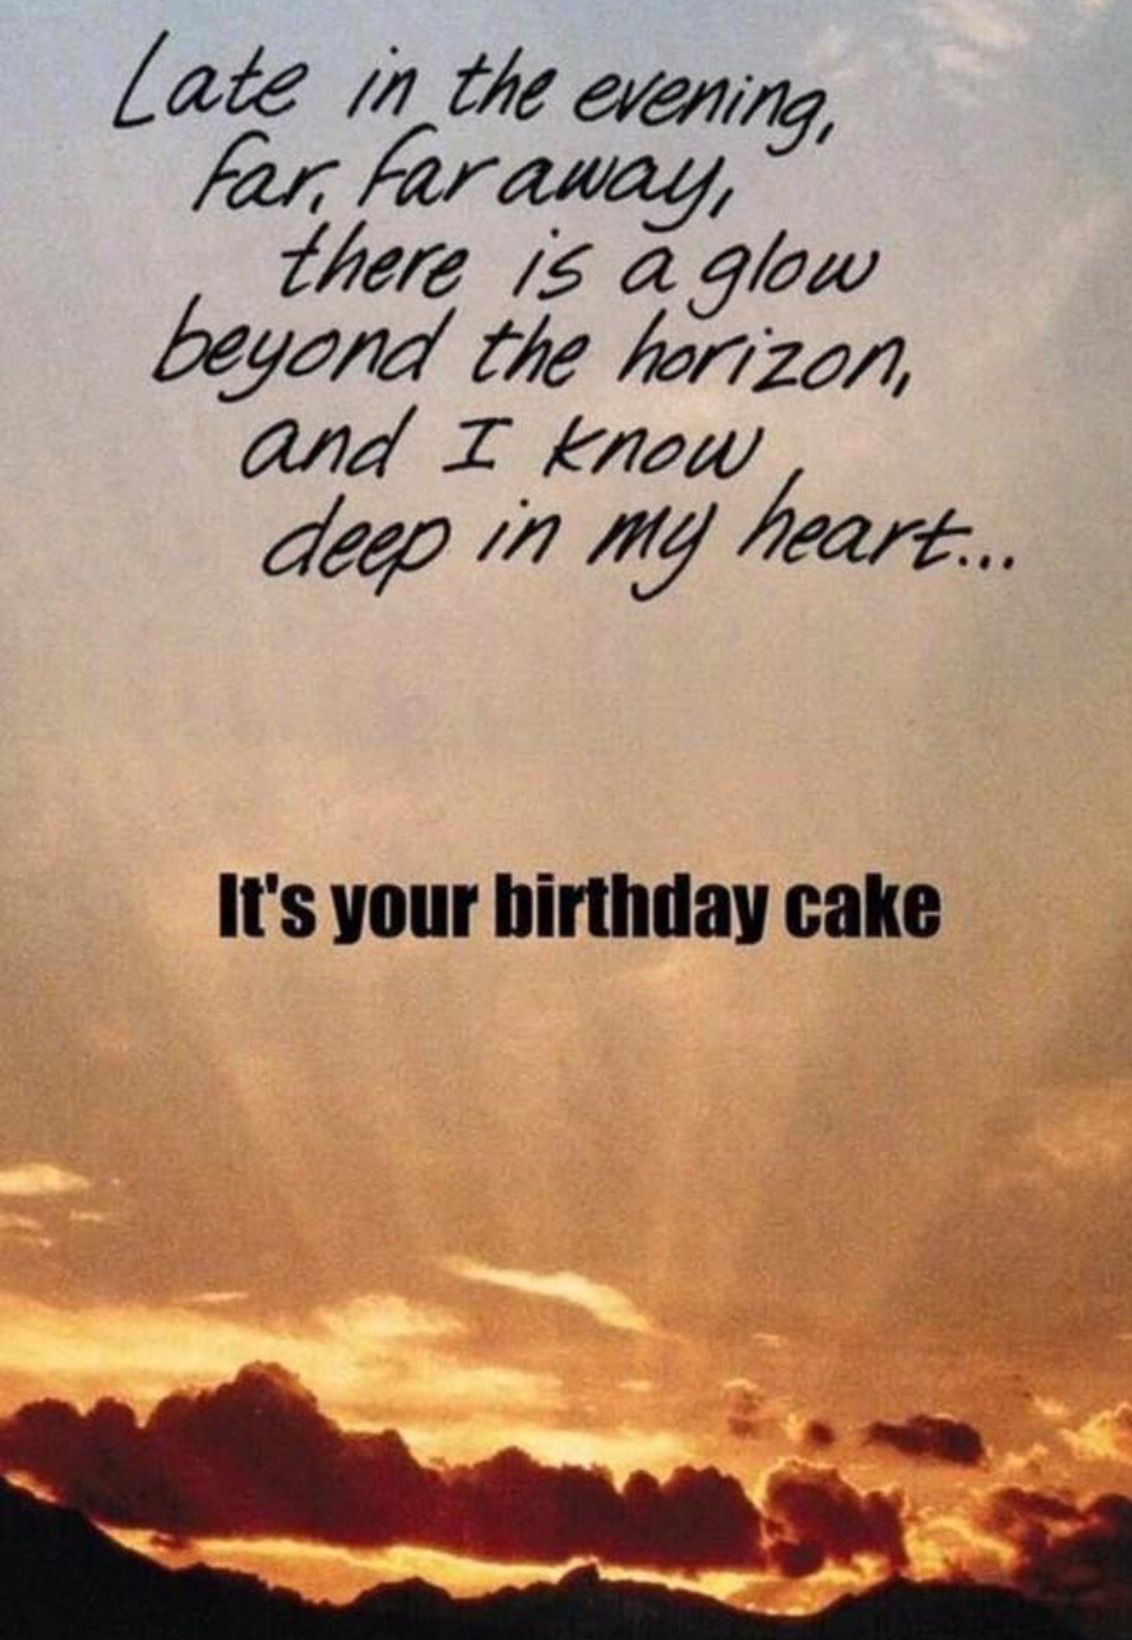 Sister Funny Quotes Pinkathy Pollock On It's Your Birthday  Pinterest  Birthdays